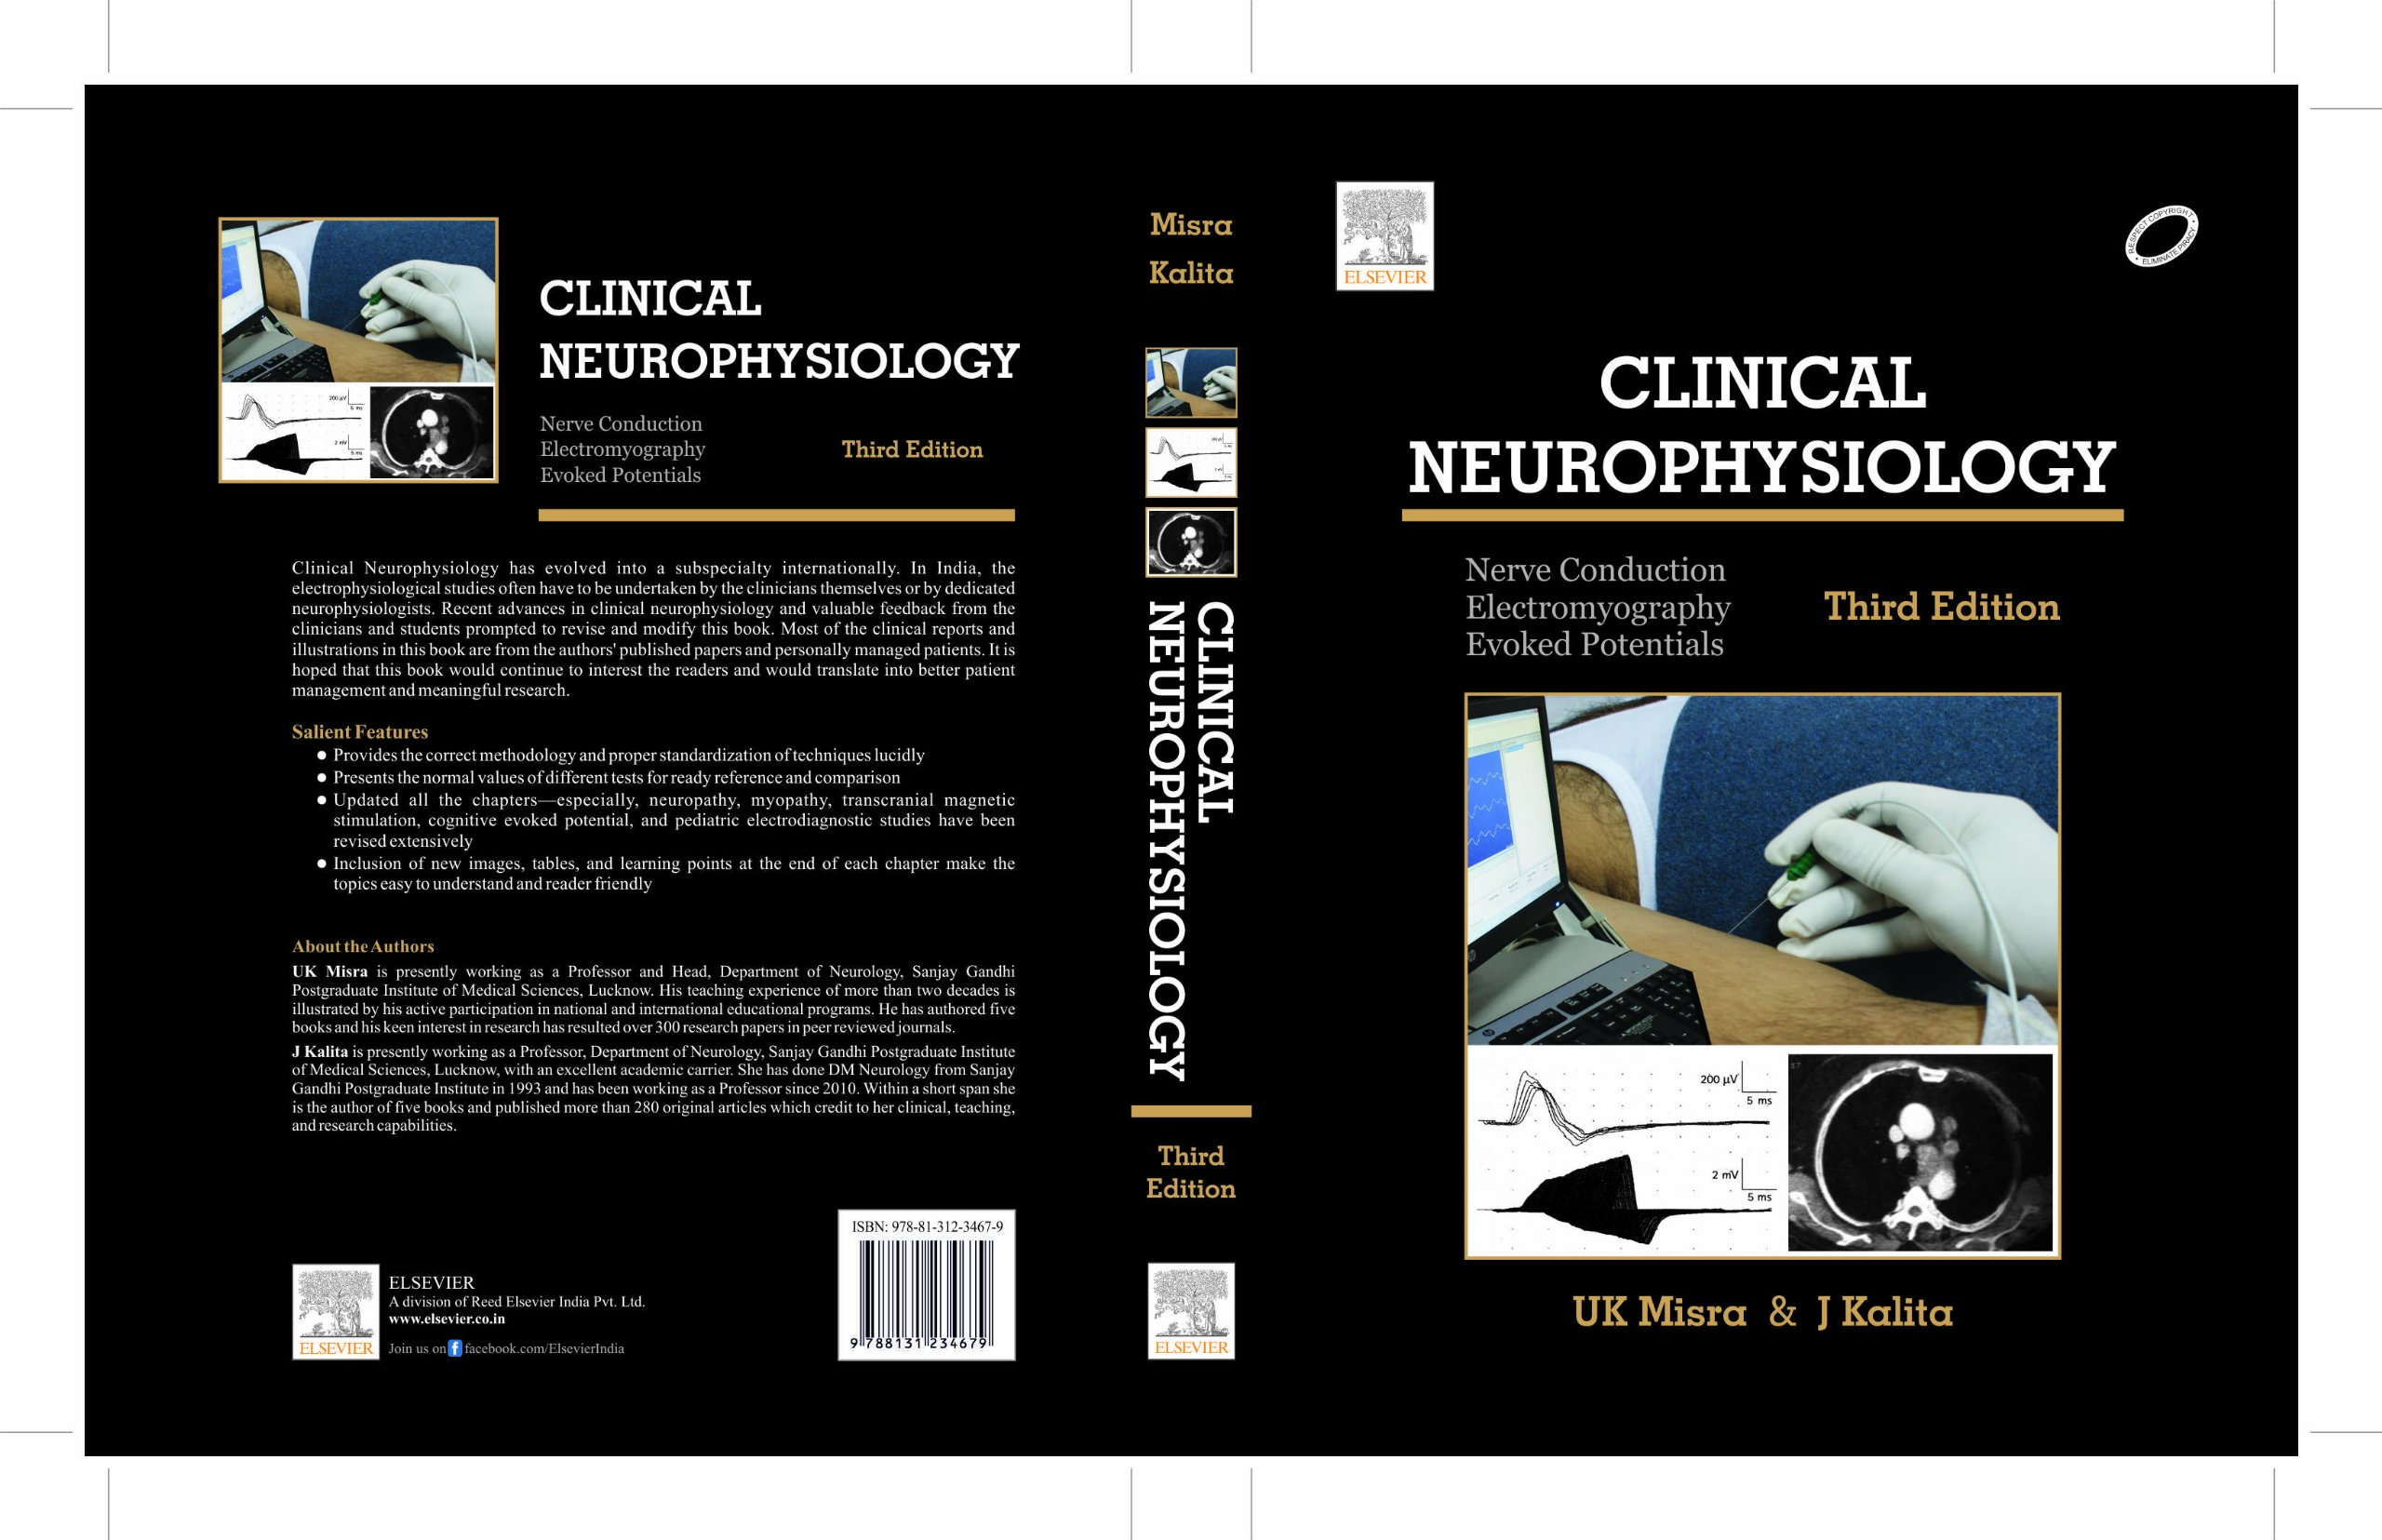 Buy Clinical Neurophysiology: Nerve Conduction, Electromyography